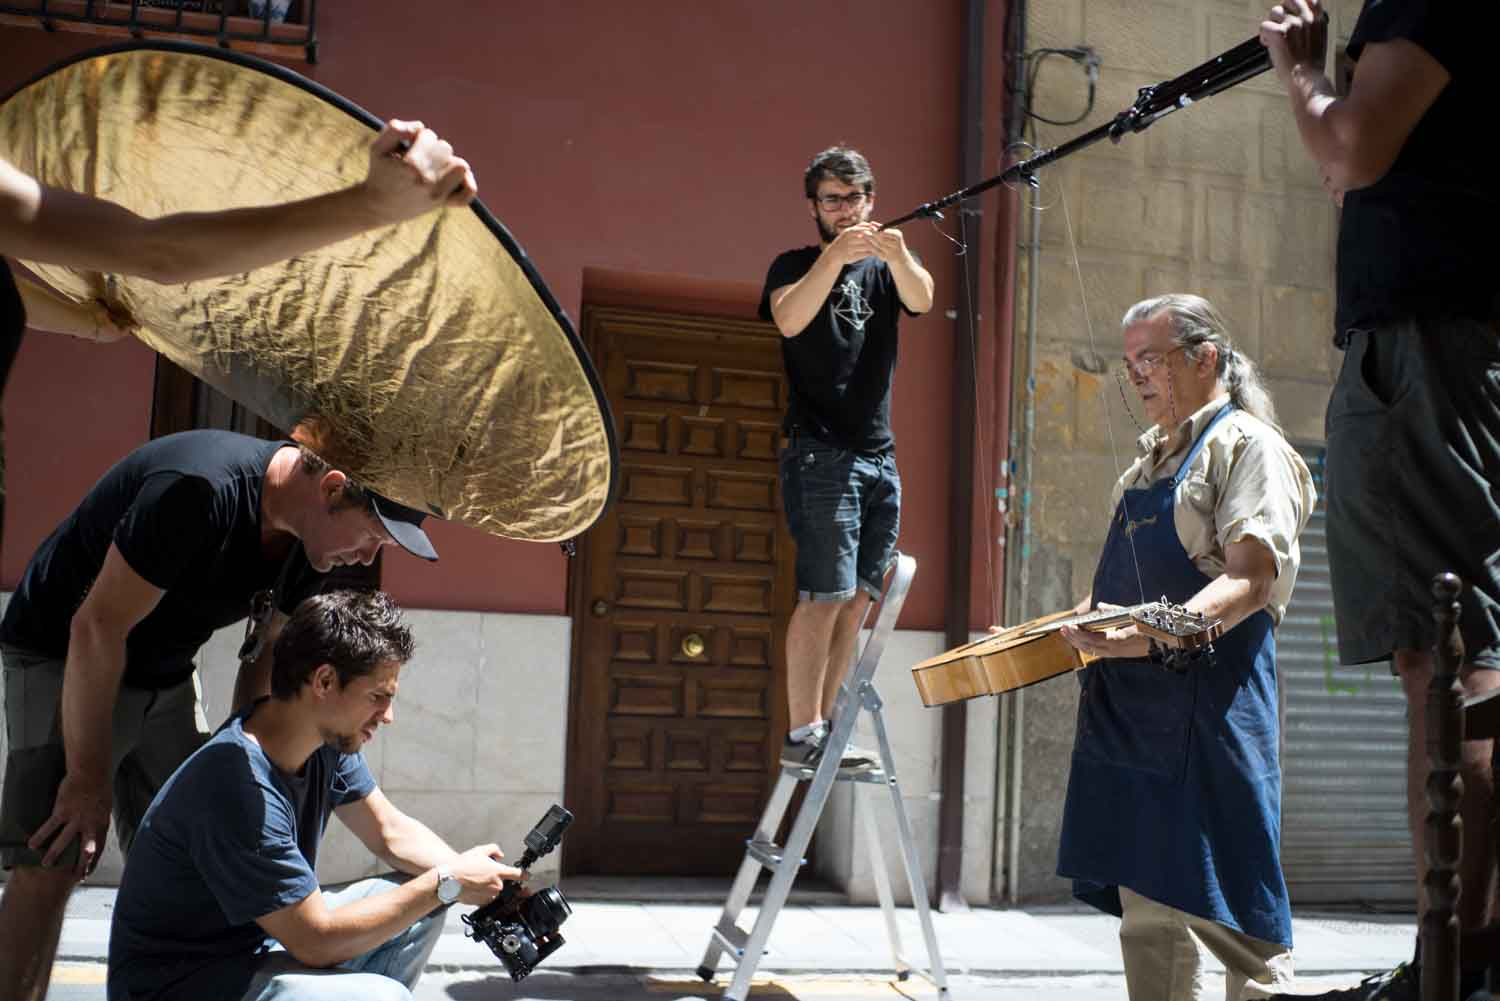 Making of del videoclip Mencanta de Antonio Carmona